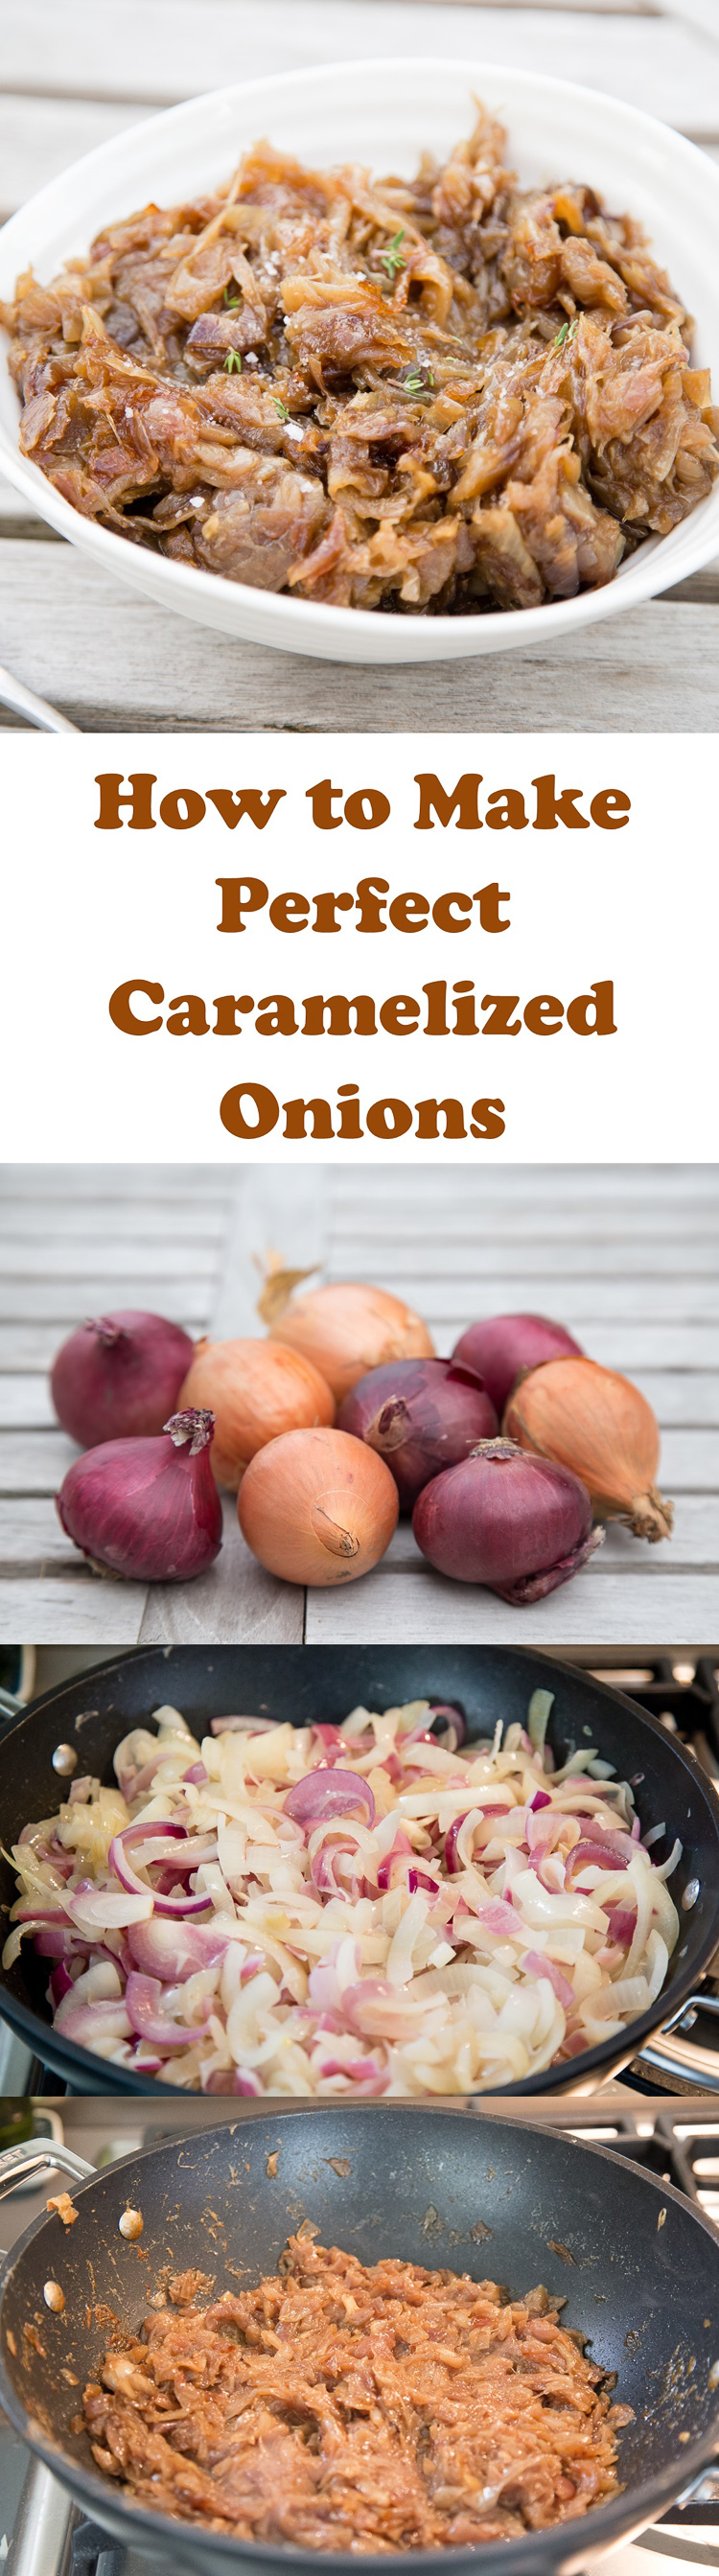 How to make the perfect, sticky, tasty caramelized onions - so simple and delicious